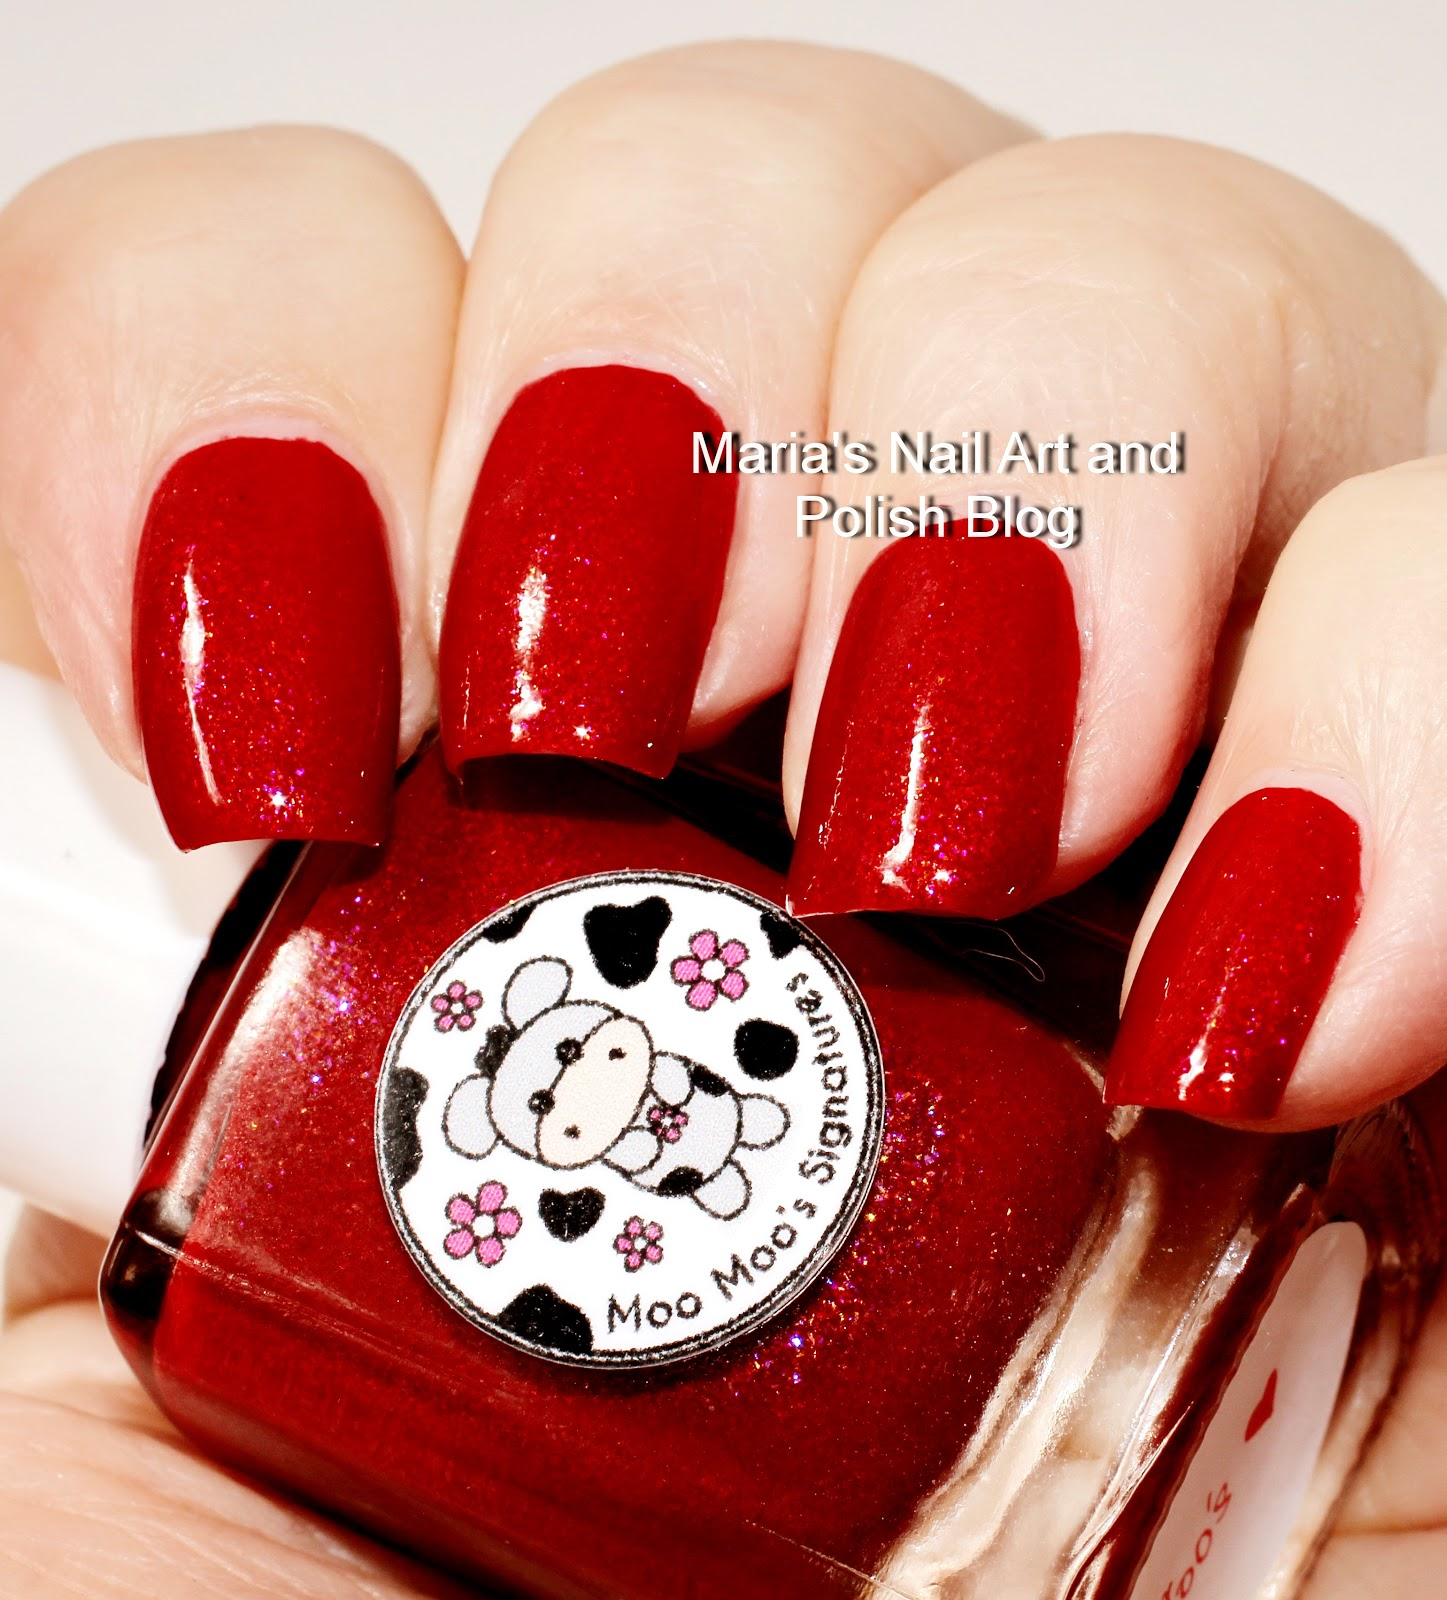 Marias Nail Art And Polish Blog Flushed With Stripes And: Marias Nail Art And Polish Blog: Moo Moo's Signatures Moo